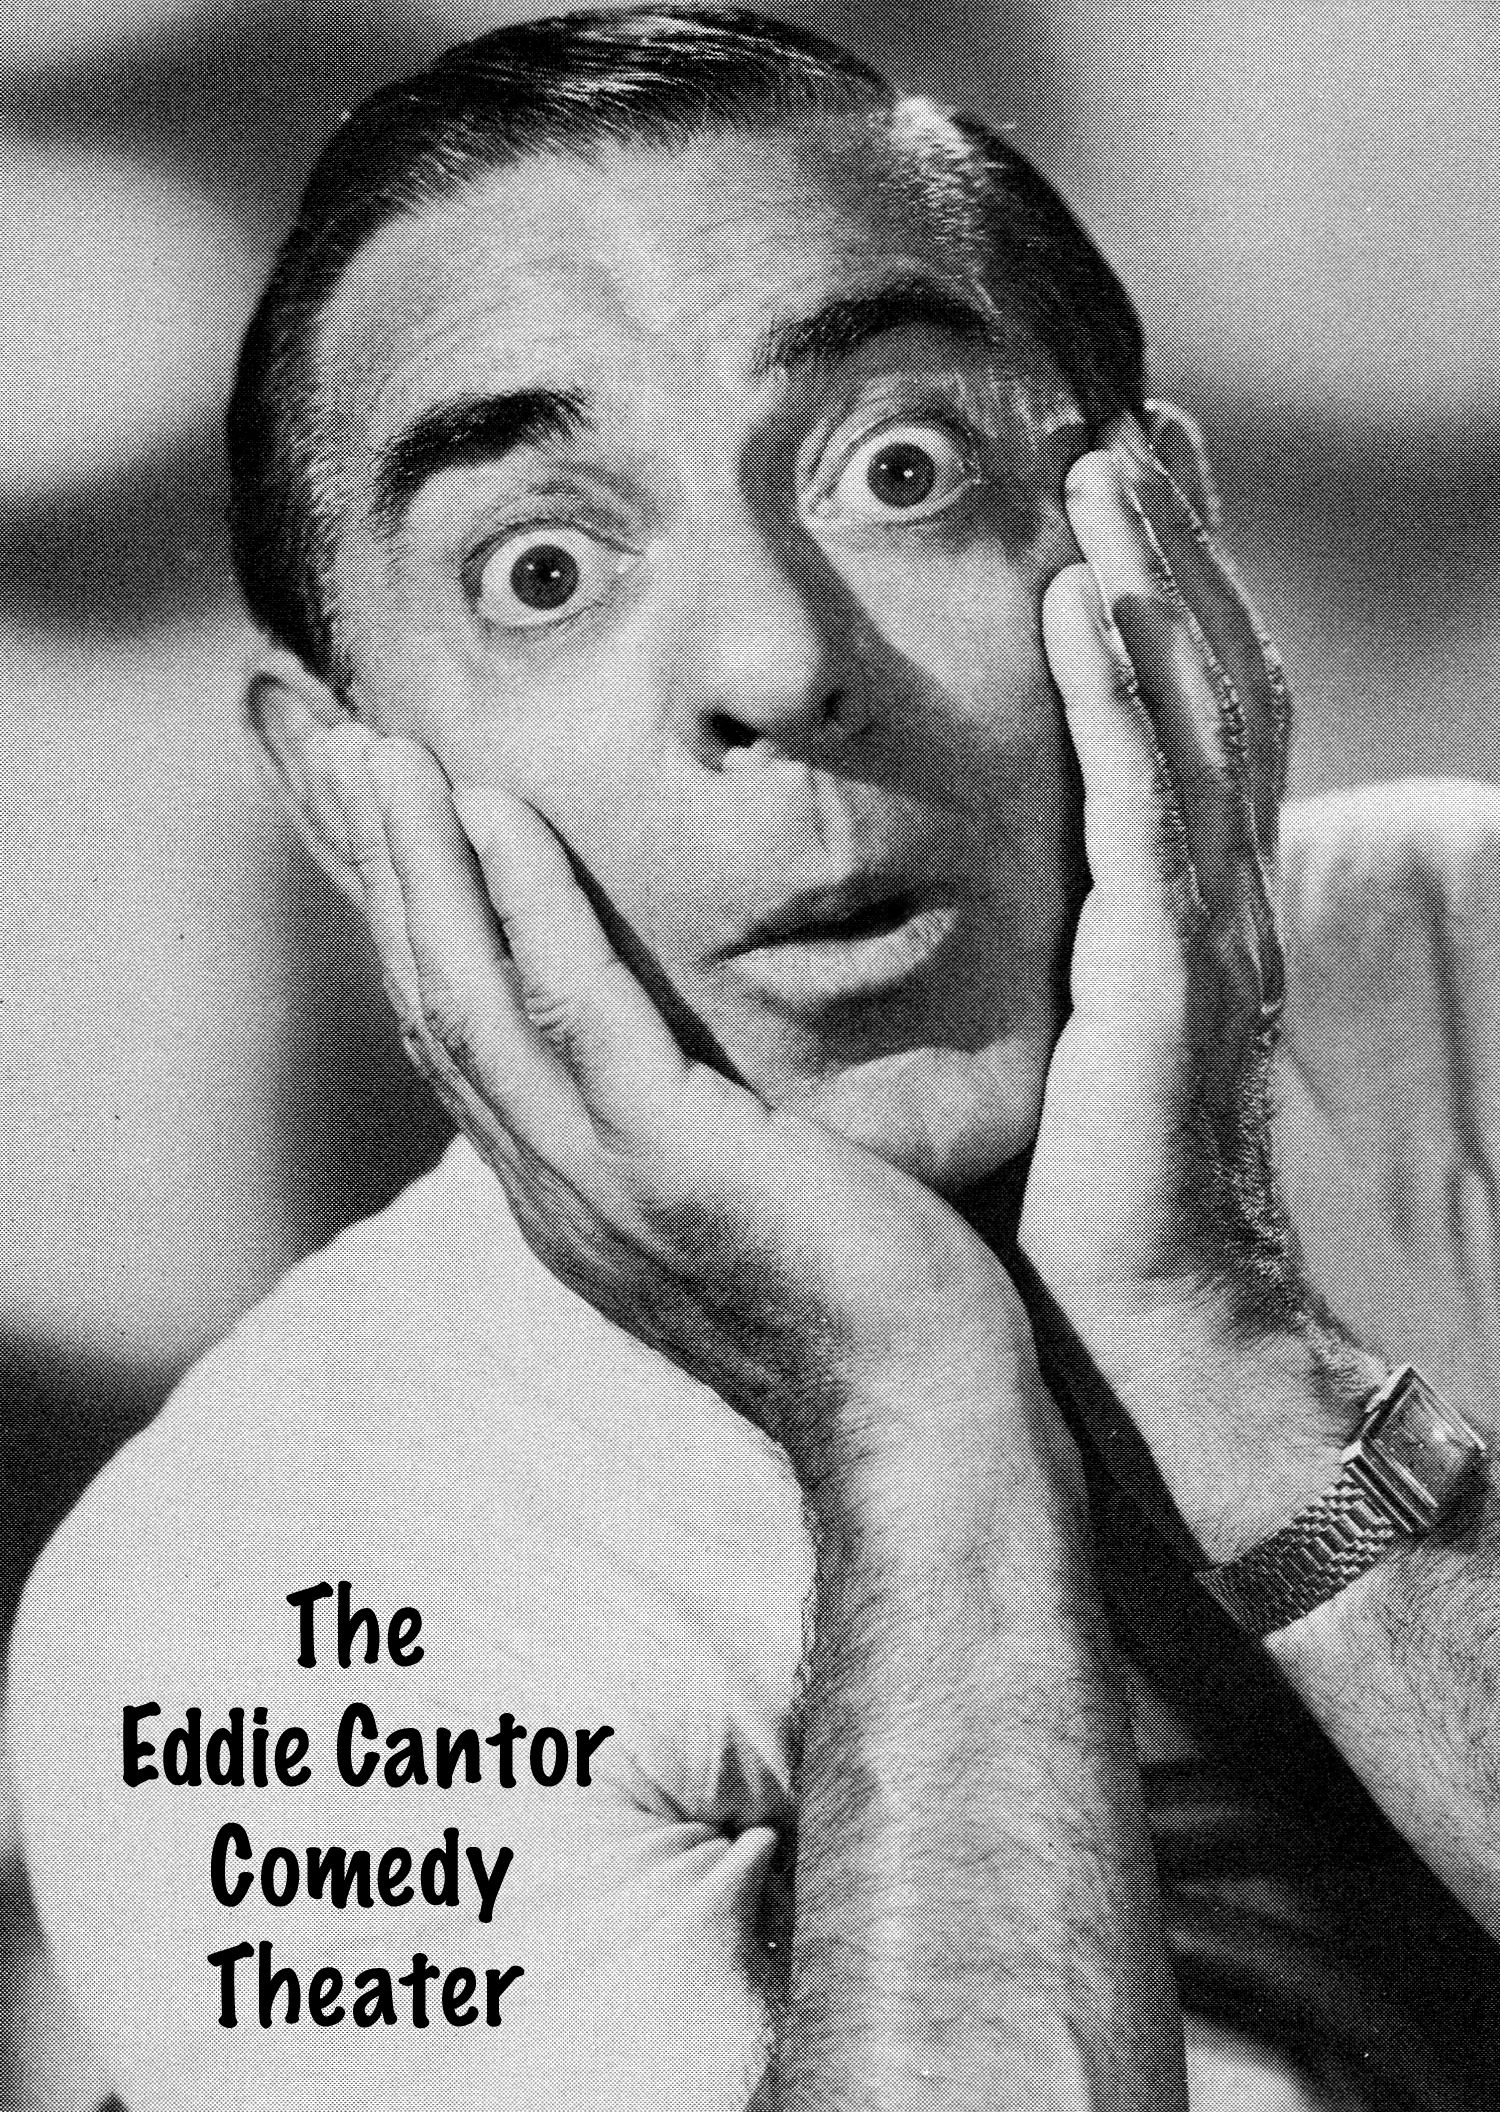 The Eddie Cantor Comedy Theater (1955)